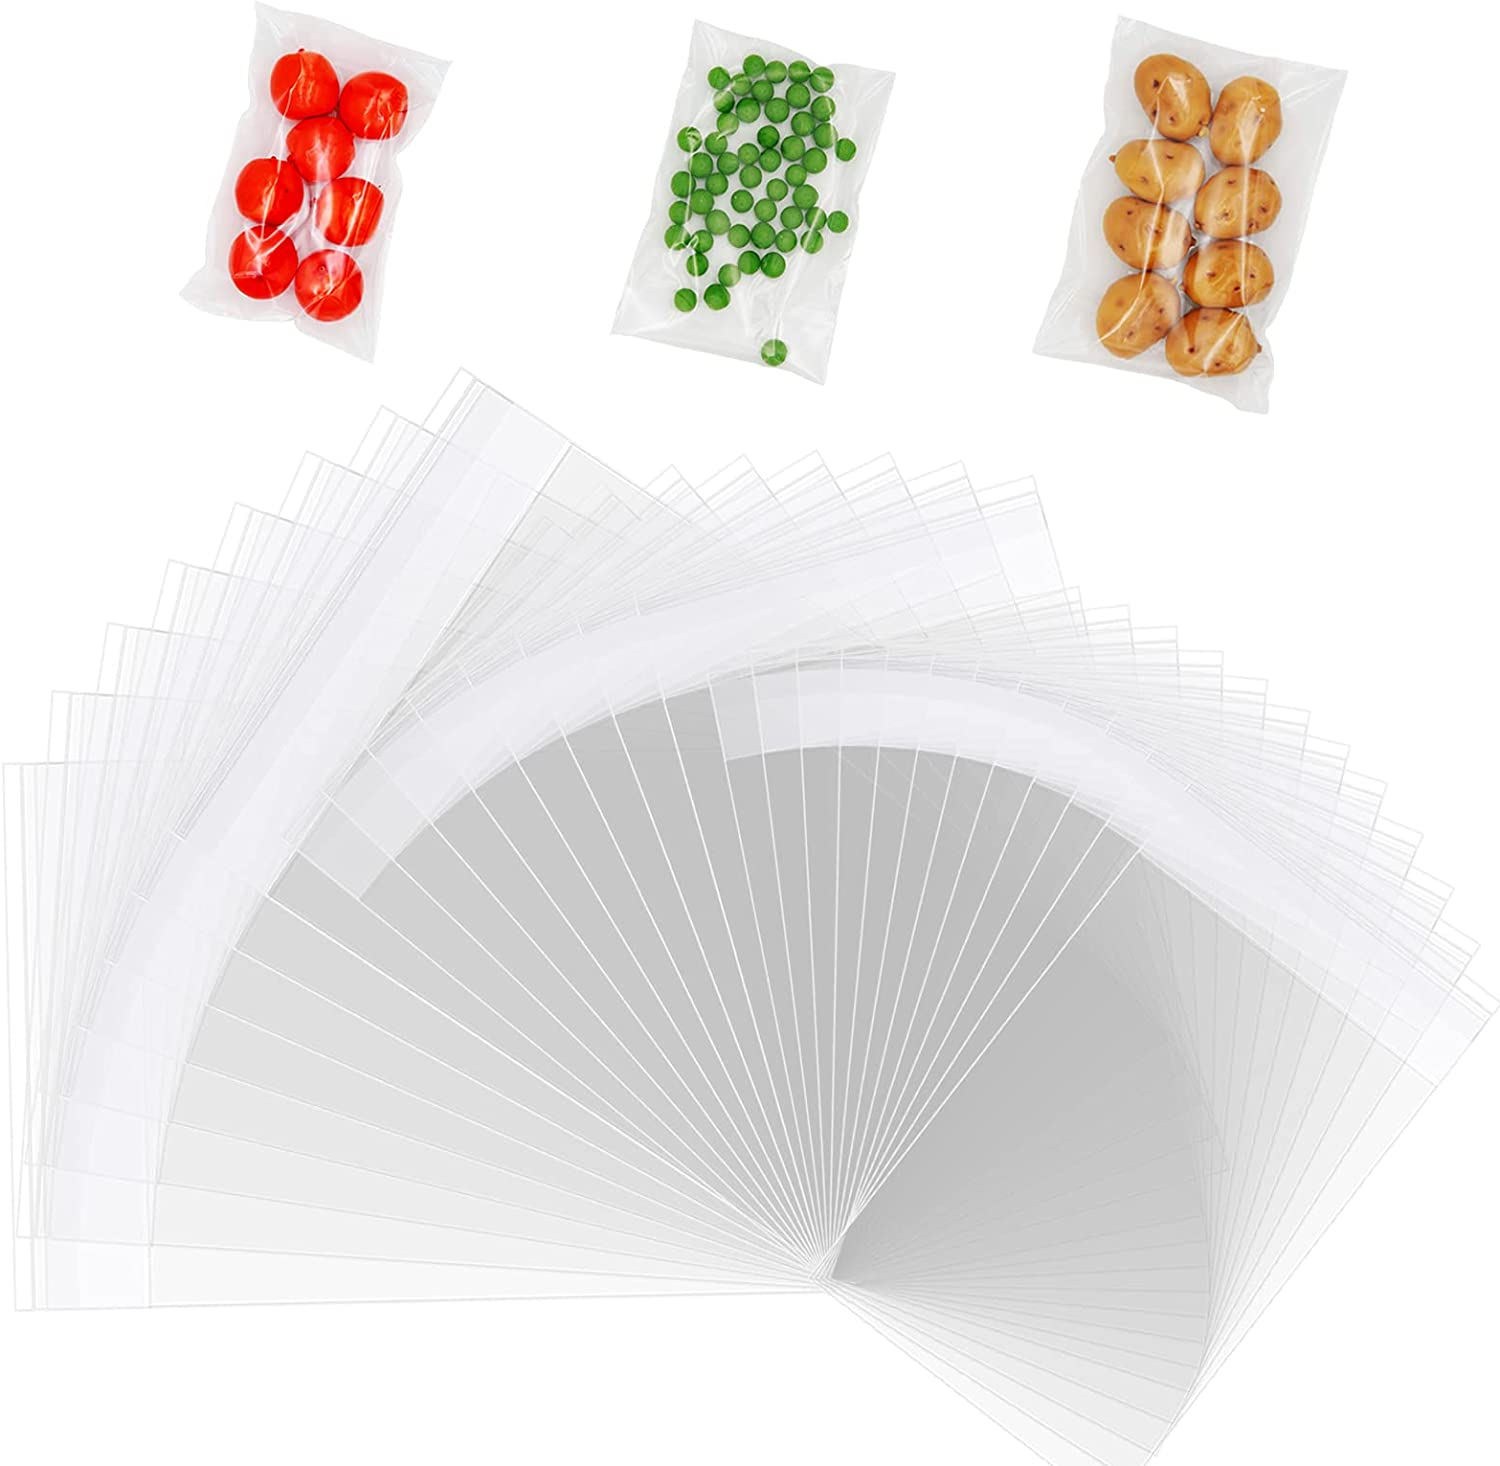 Treat Bags, 500pcs Self Sealing Cellophane Bags with 300Pcs 3.5X5'' & 150Pcs 4X6'' &50Pcs 5×7'' for Bakery, Candle, Jewelry, Snack, Cards, Soap